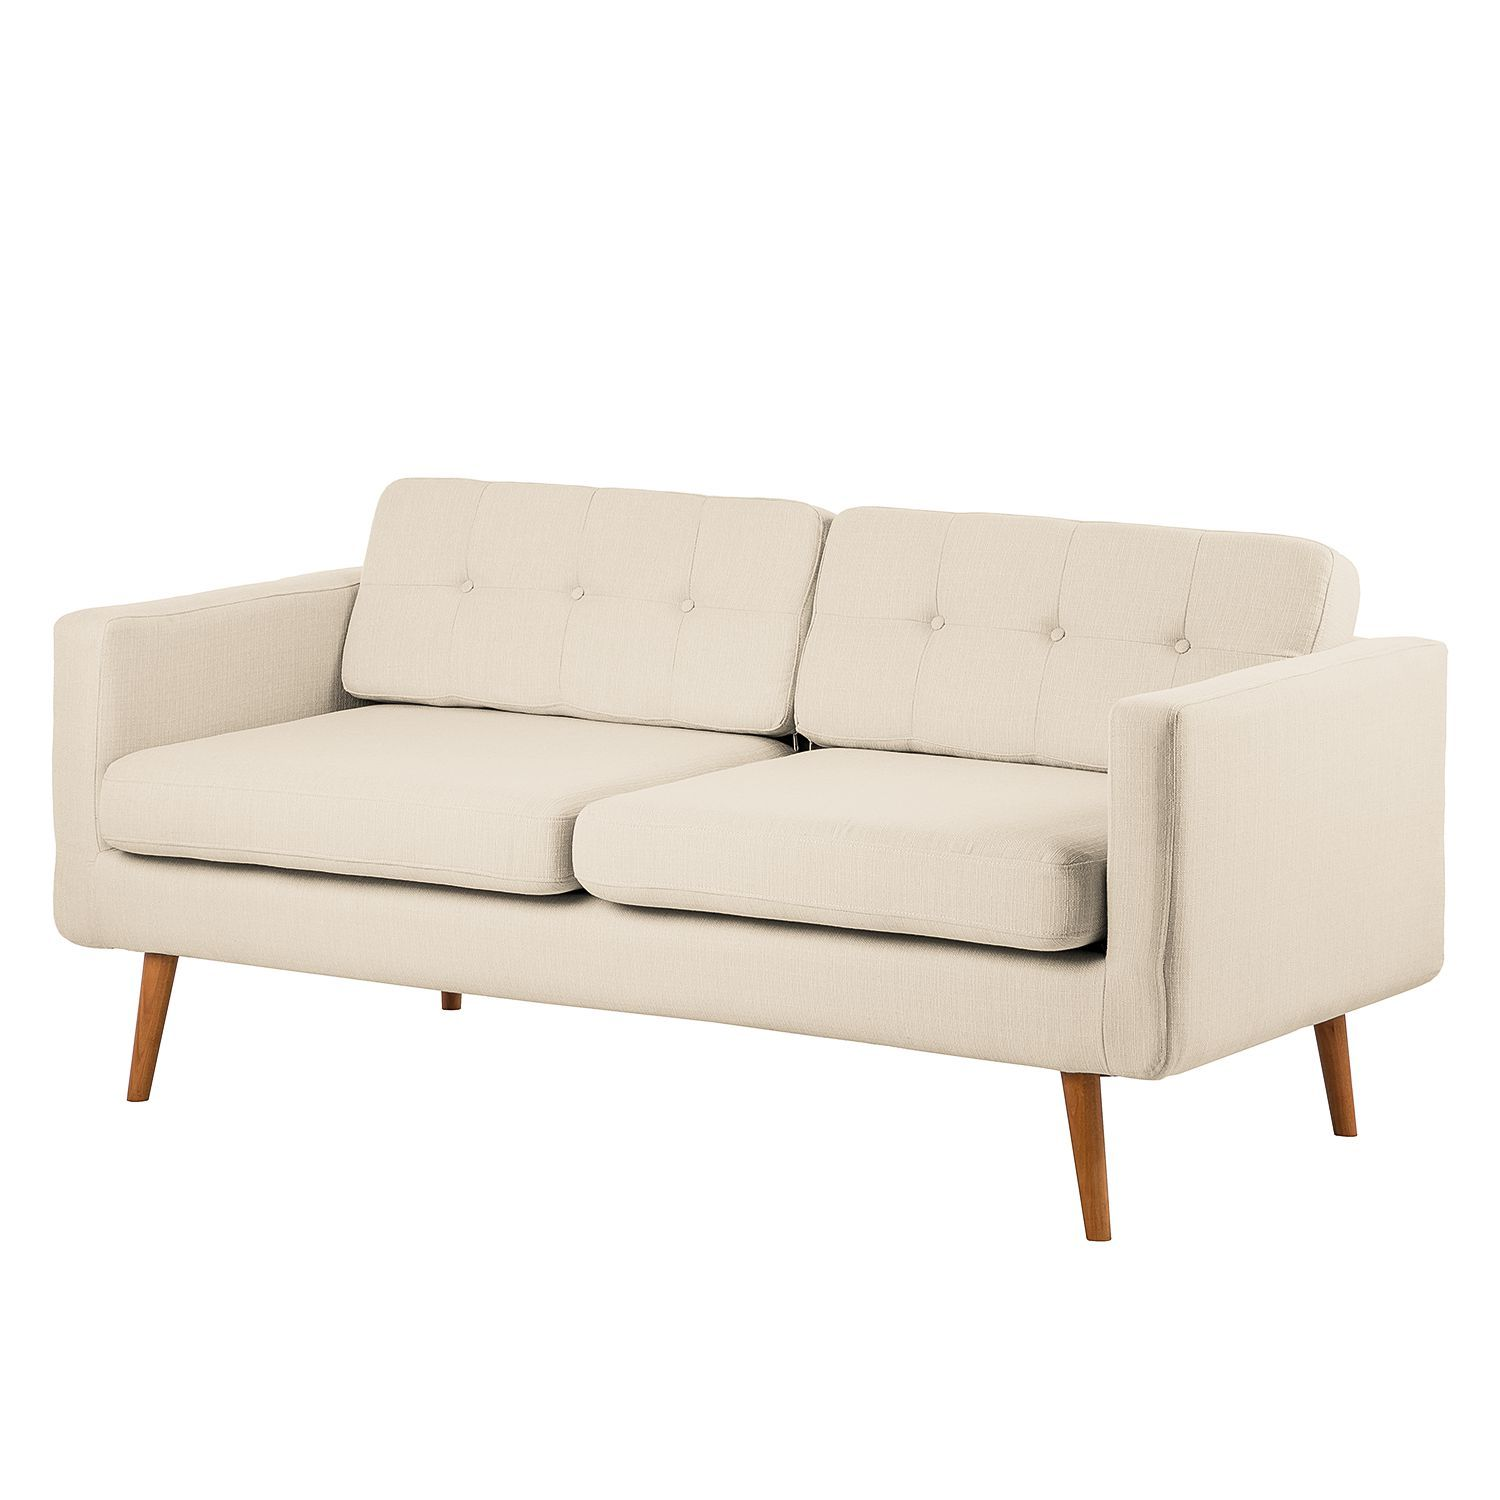 Ikea Bettsofa Holzgestell Pin By Ladendirekt On Sofas Couches Sofa Sofa Furniture